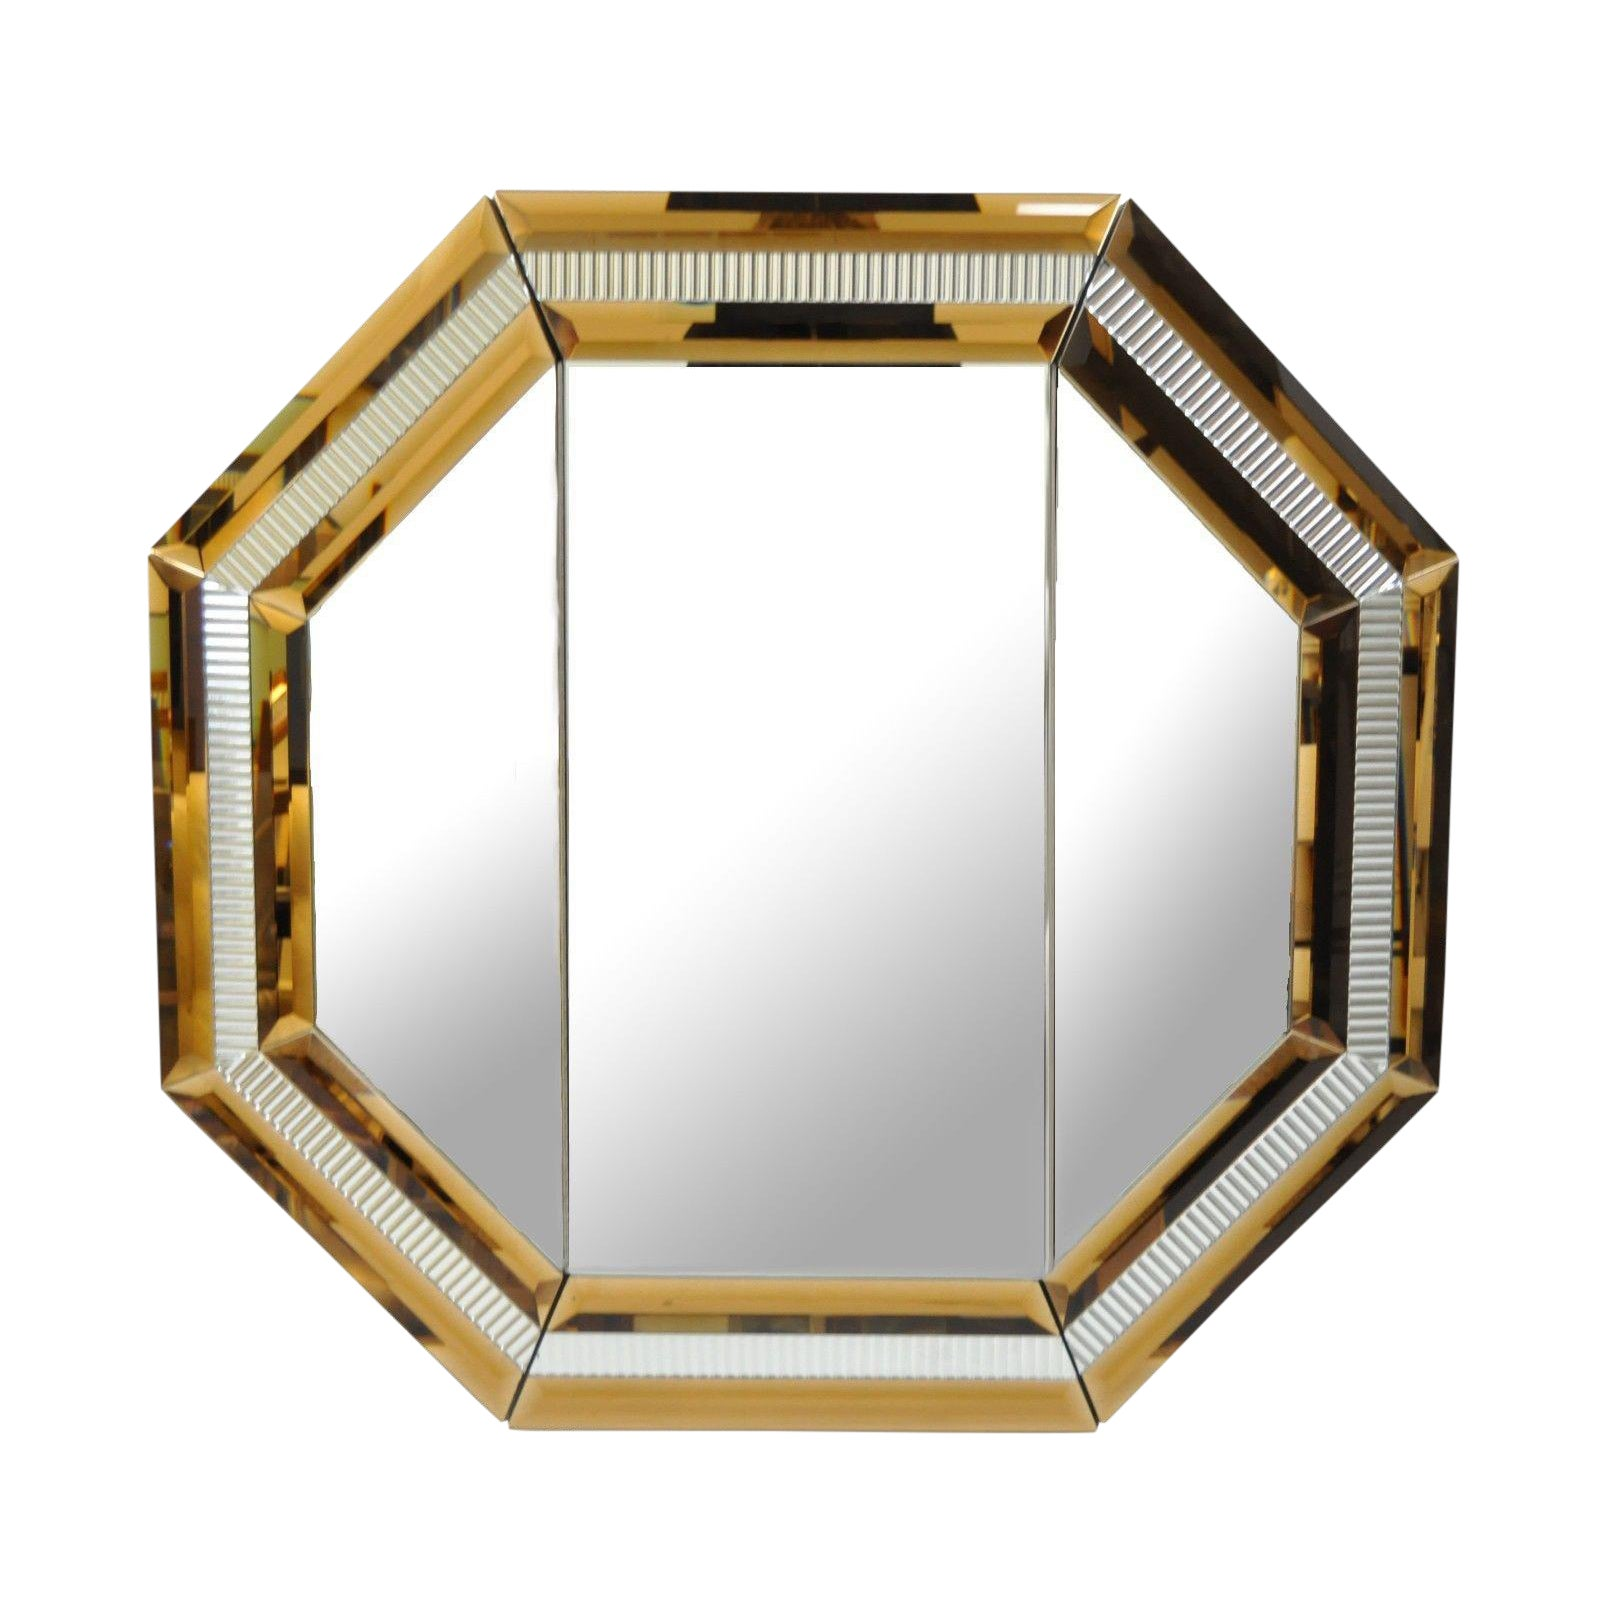 Octagonal Tri Fold Wall Bathroom Vanity Mirror | Chairish